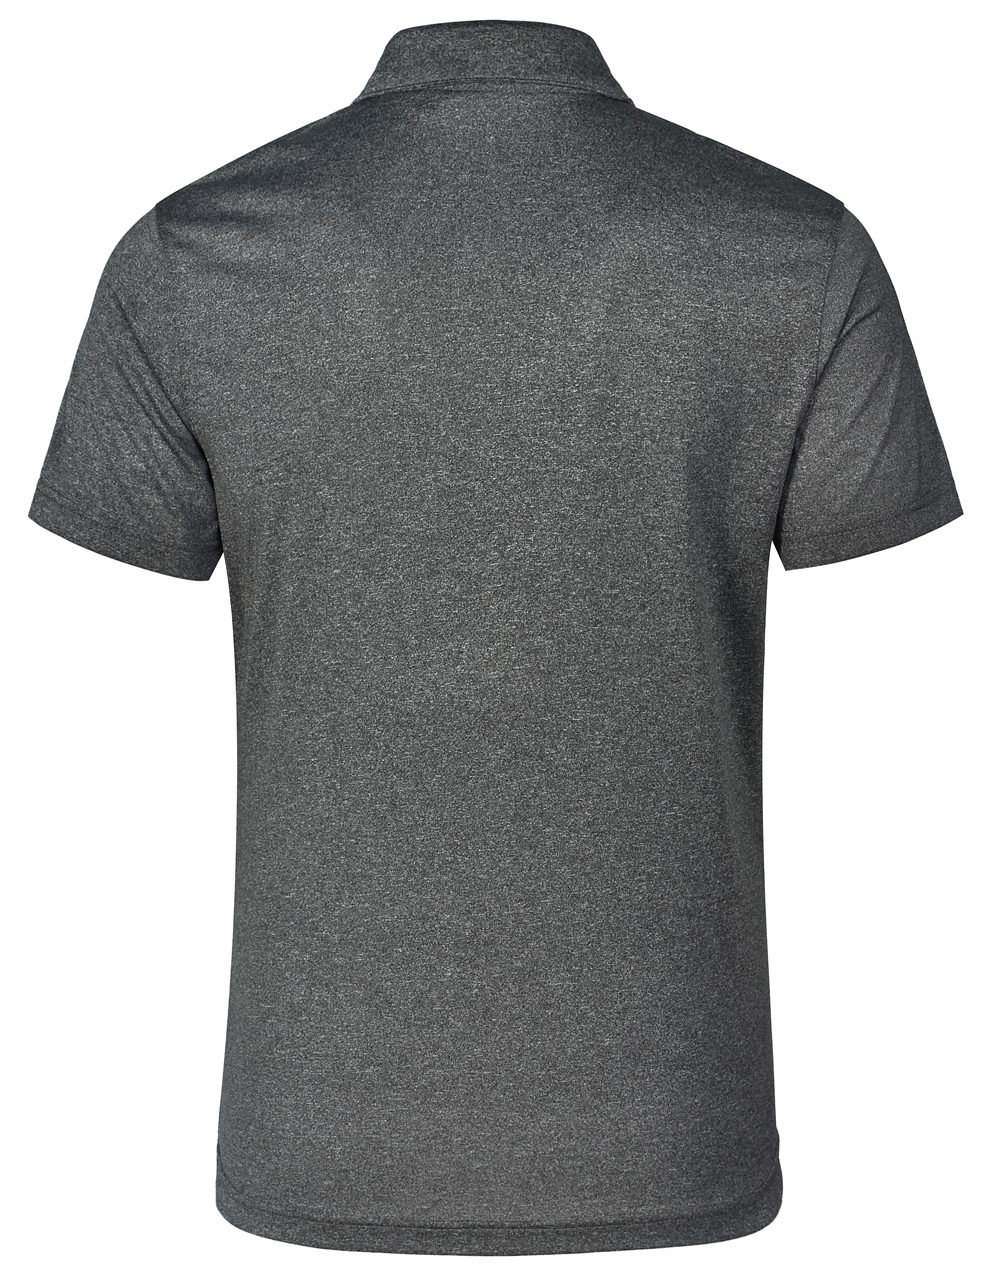 https://s3-ap-southeast-1.amazonaws.com/ws-imgs/POLOSHIRTS/PS85_Charcoal_Back.jpg